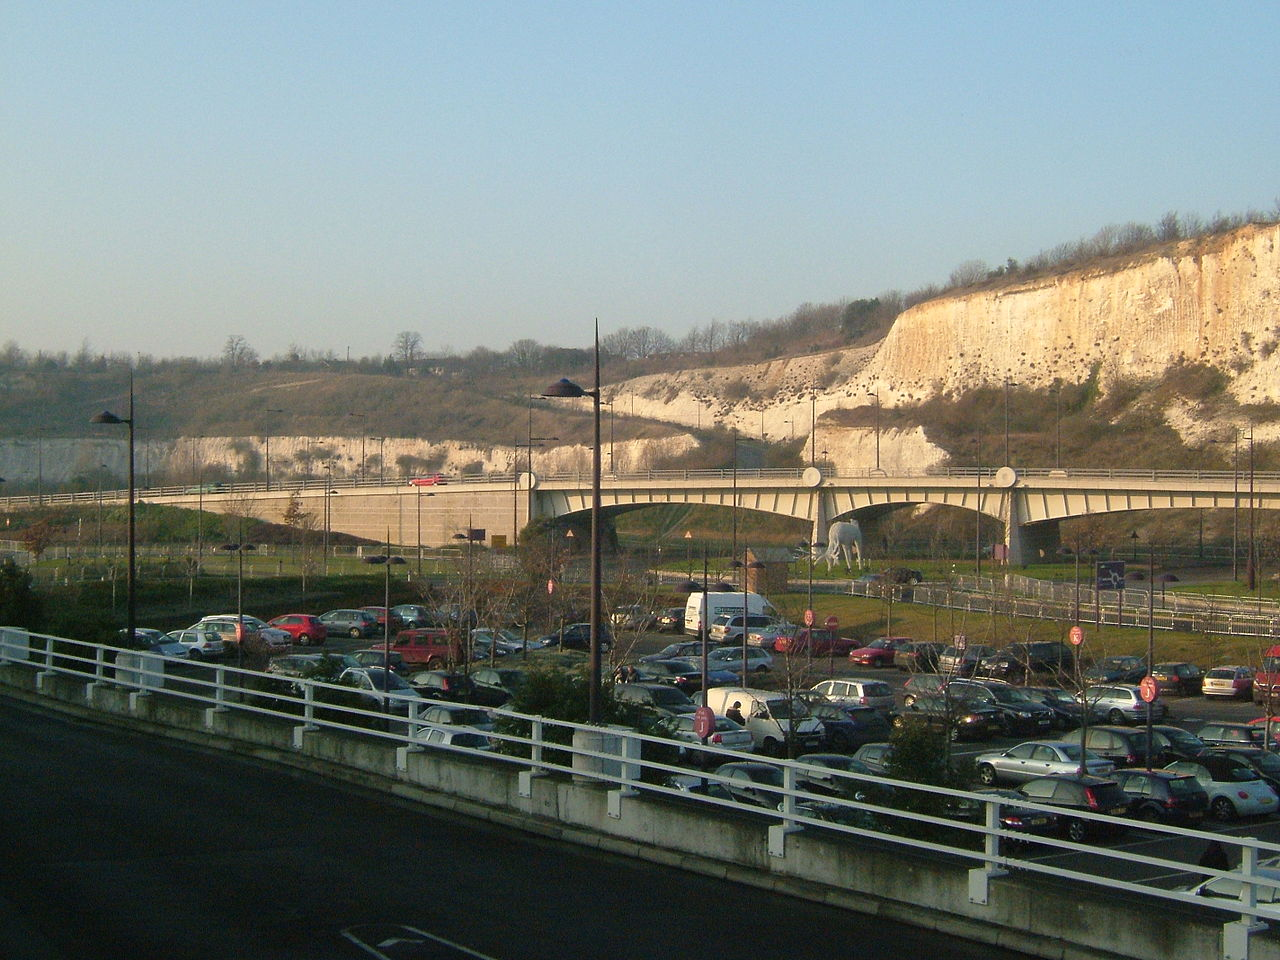 The quarry at Bluewater